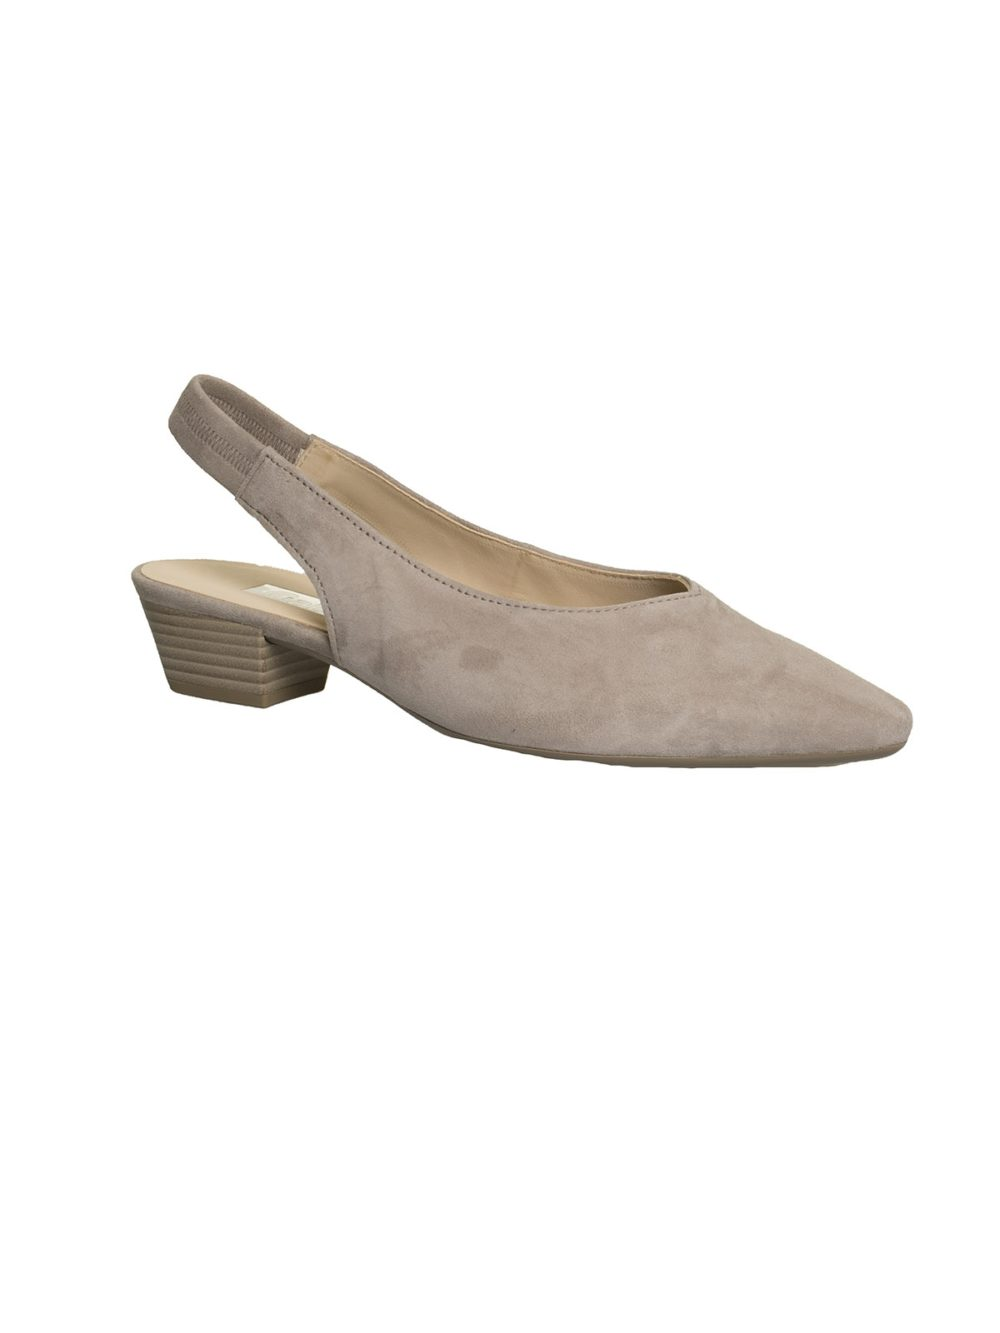 Heathcliff Shoe Gabor Shoes Katie Kerr Women's Shoes